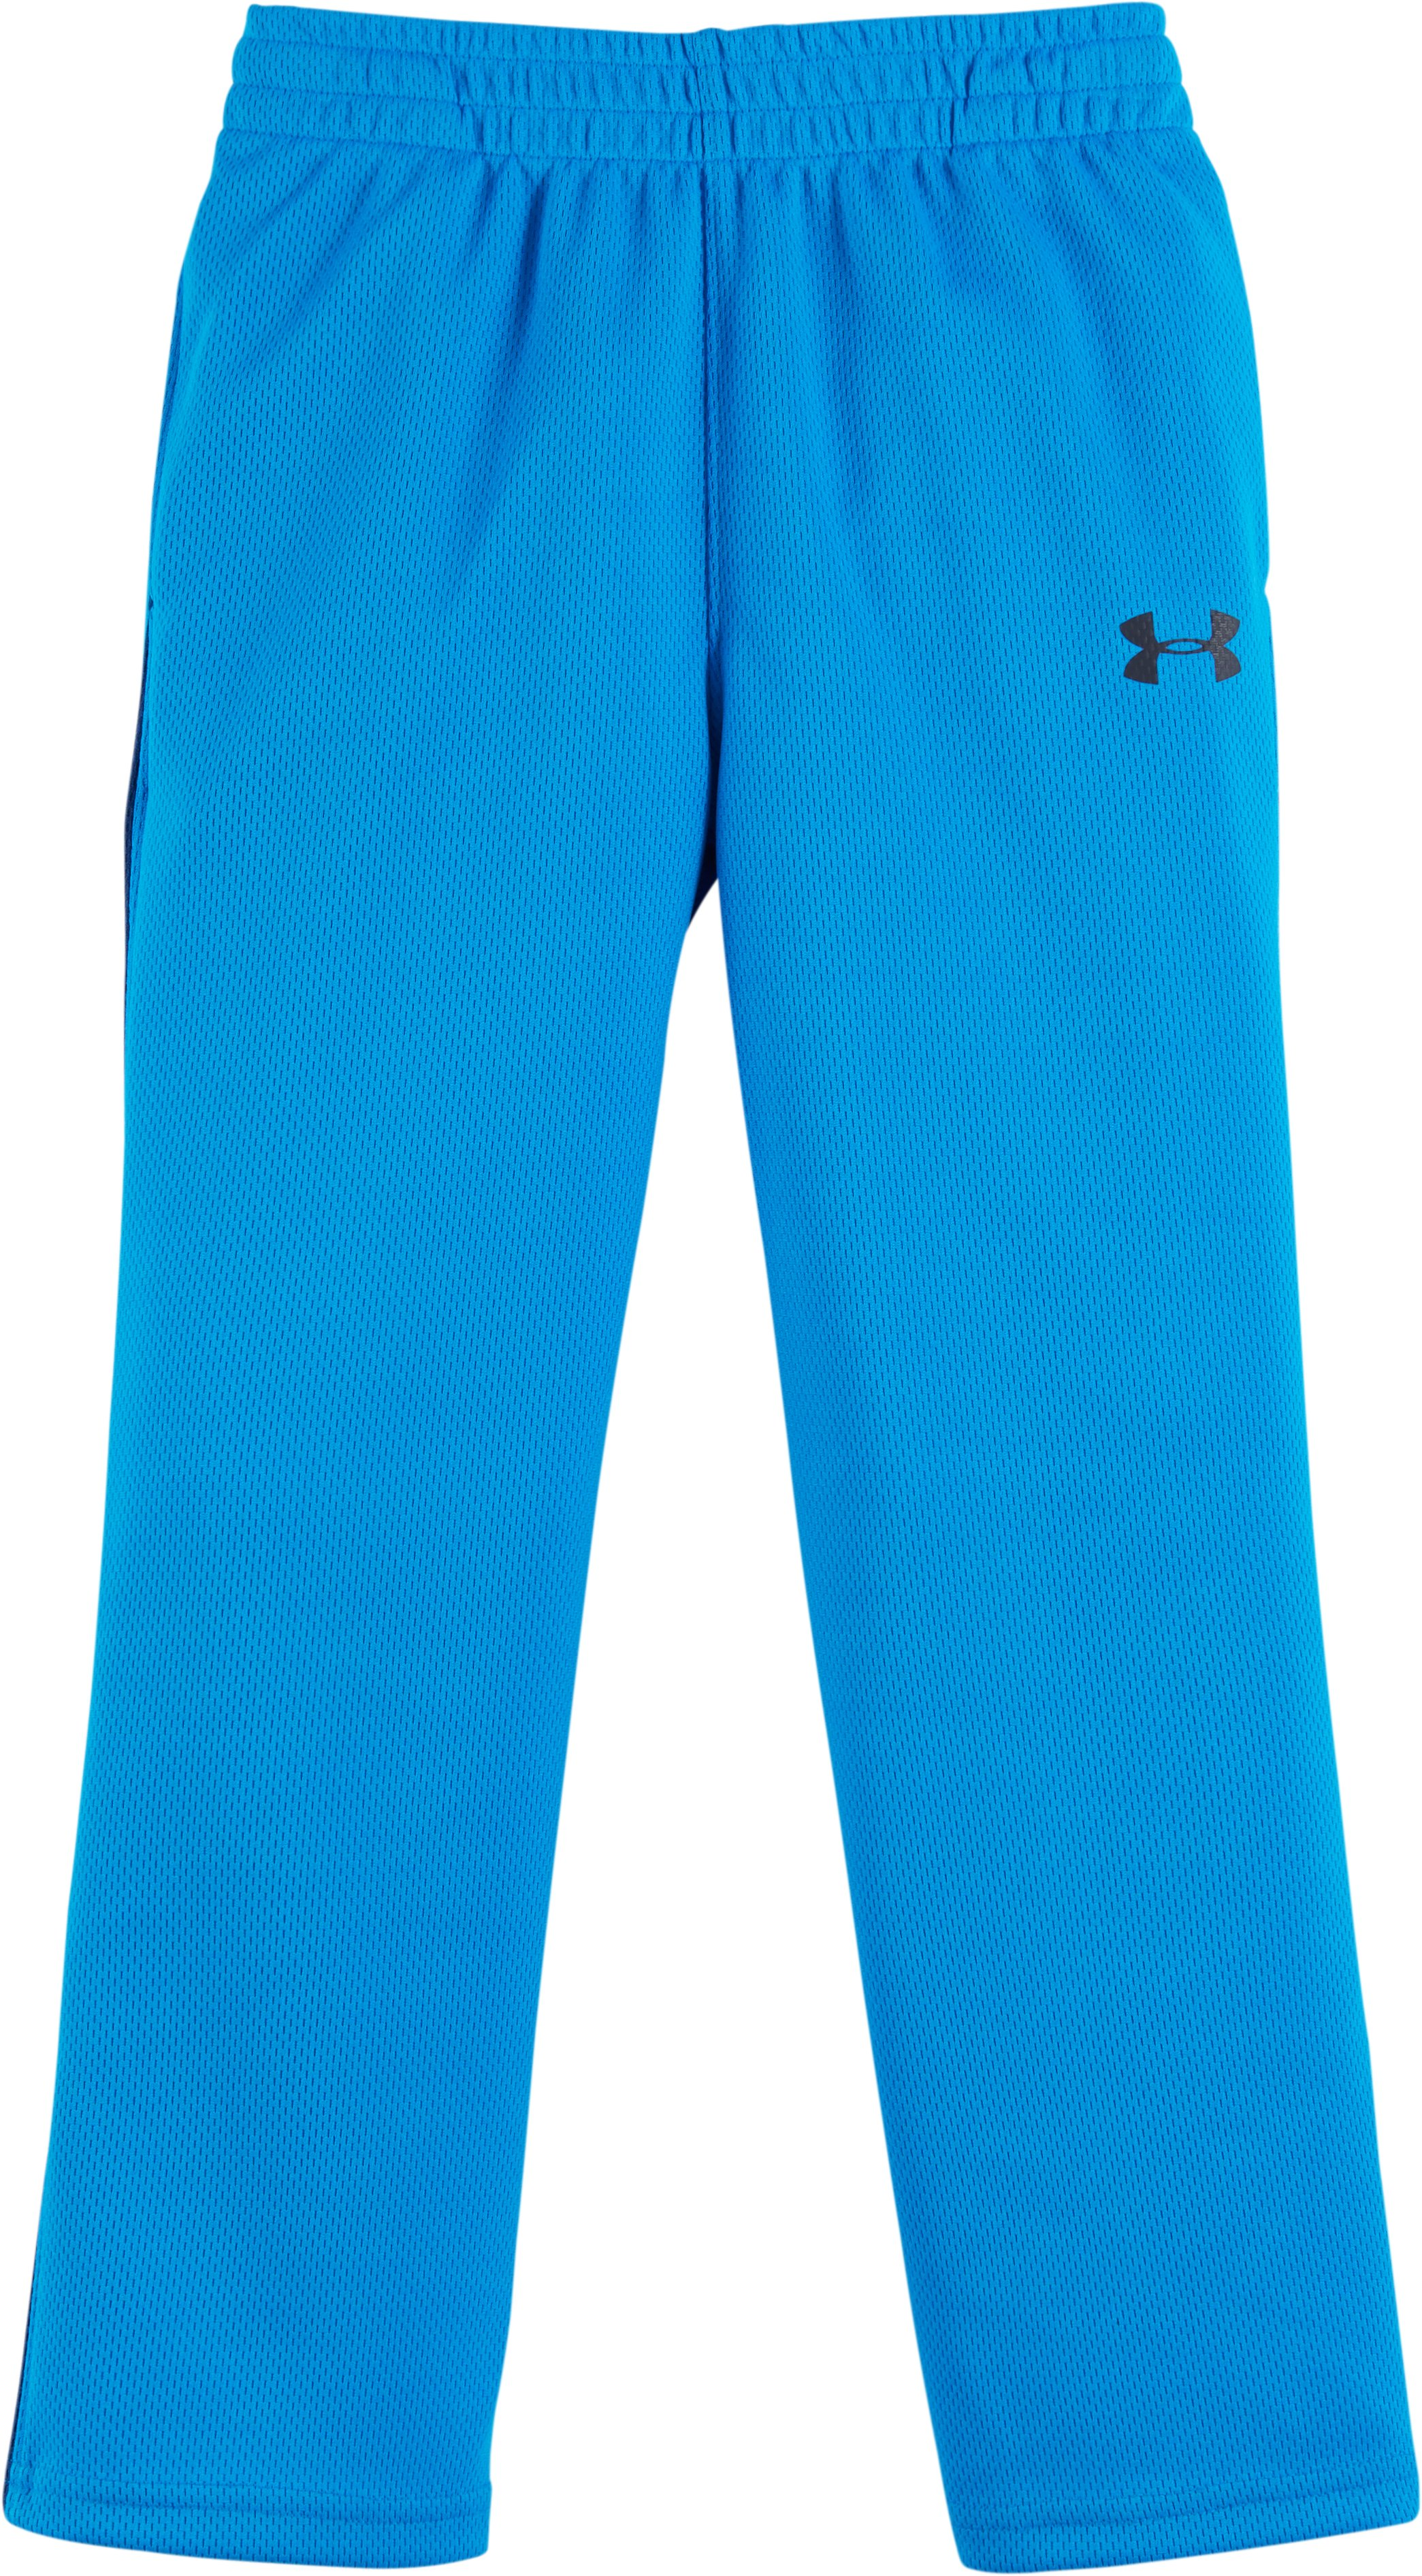 Boys' Toddler UA Midweight Champ Warm-Up Pants, BRILLIANT BLUE